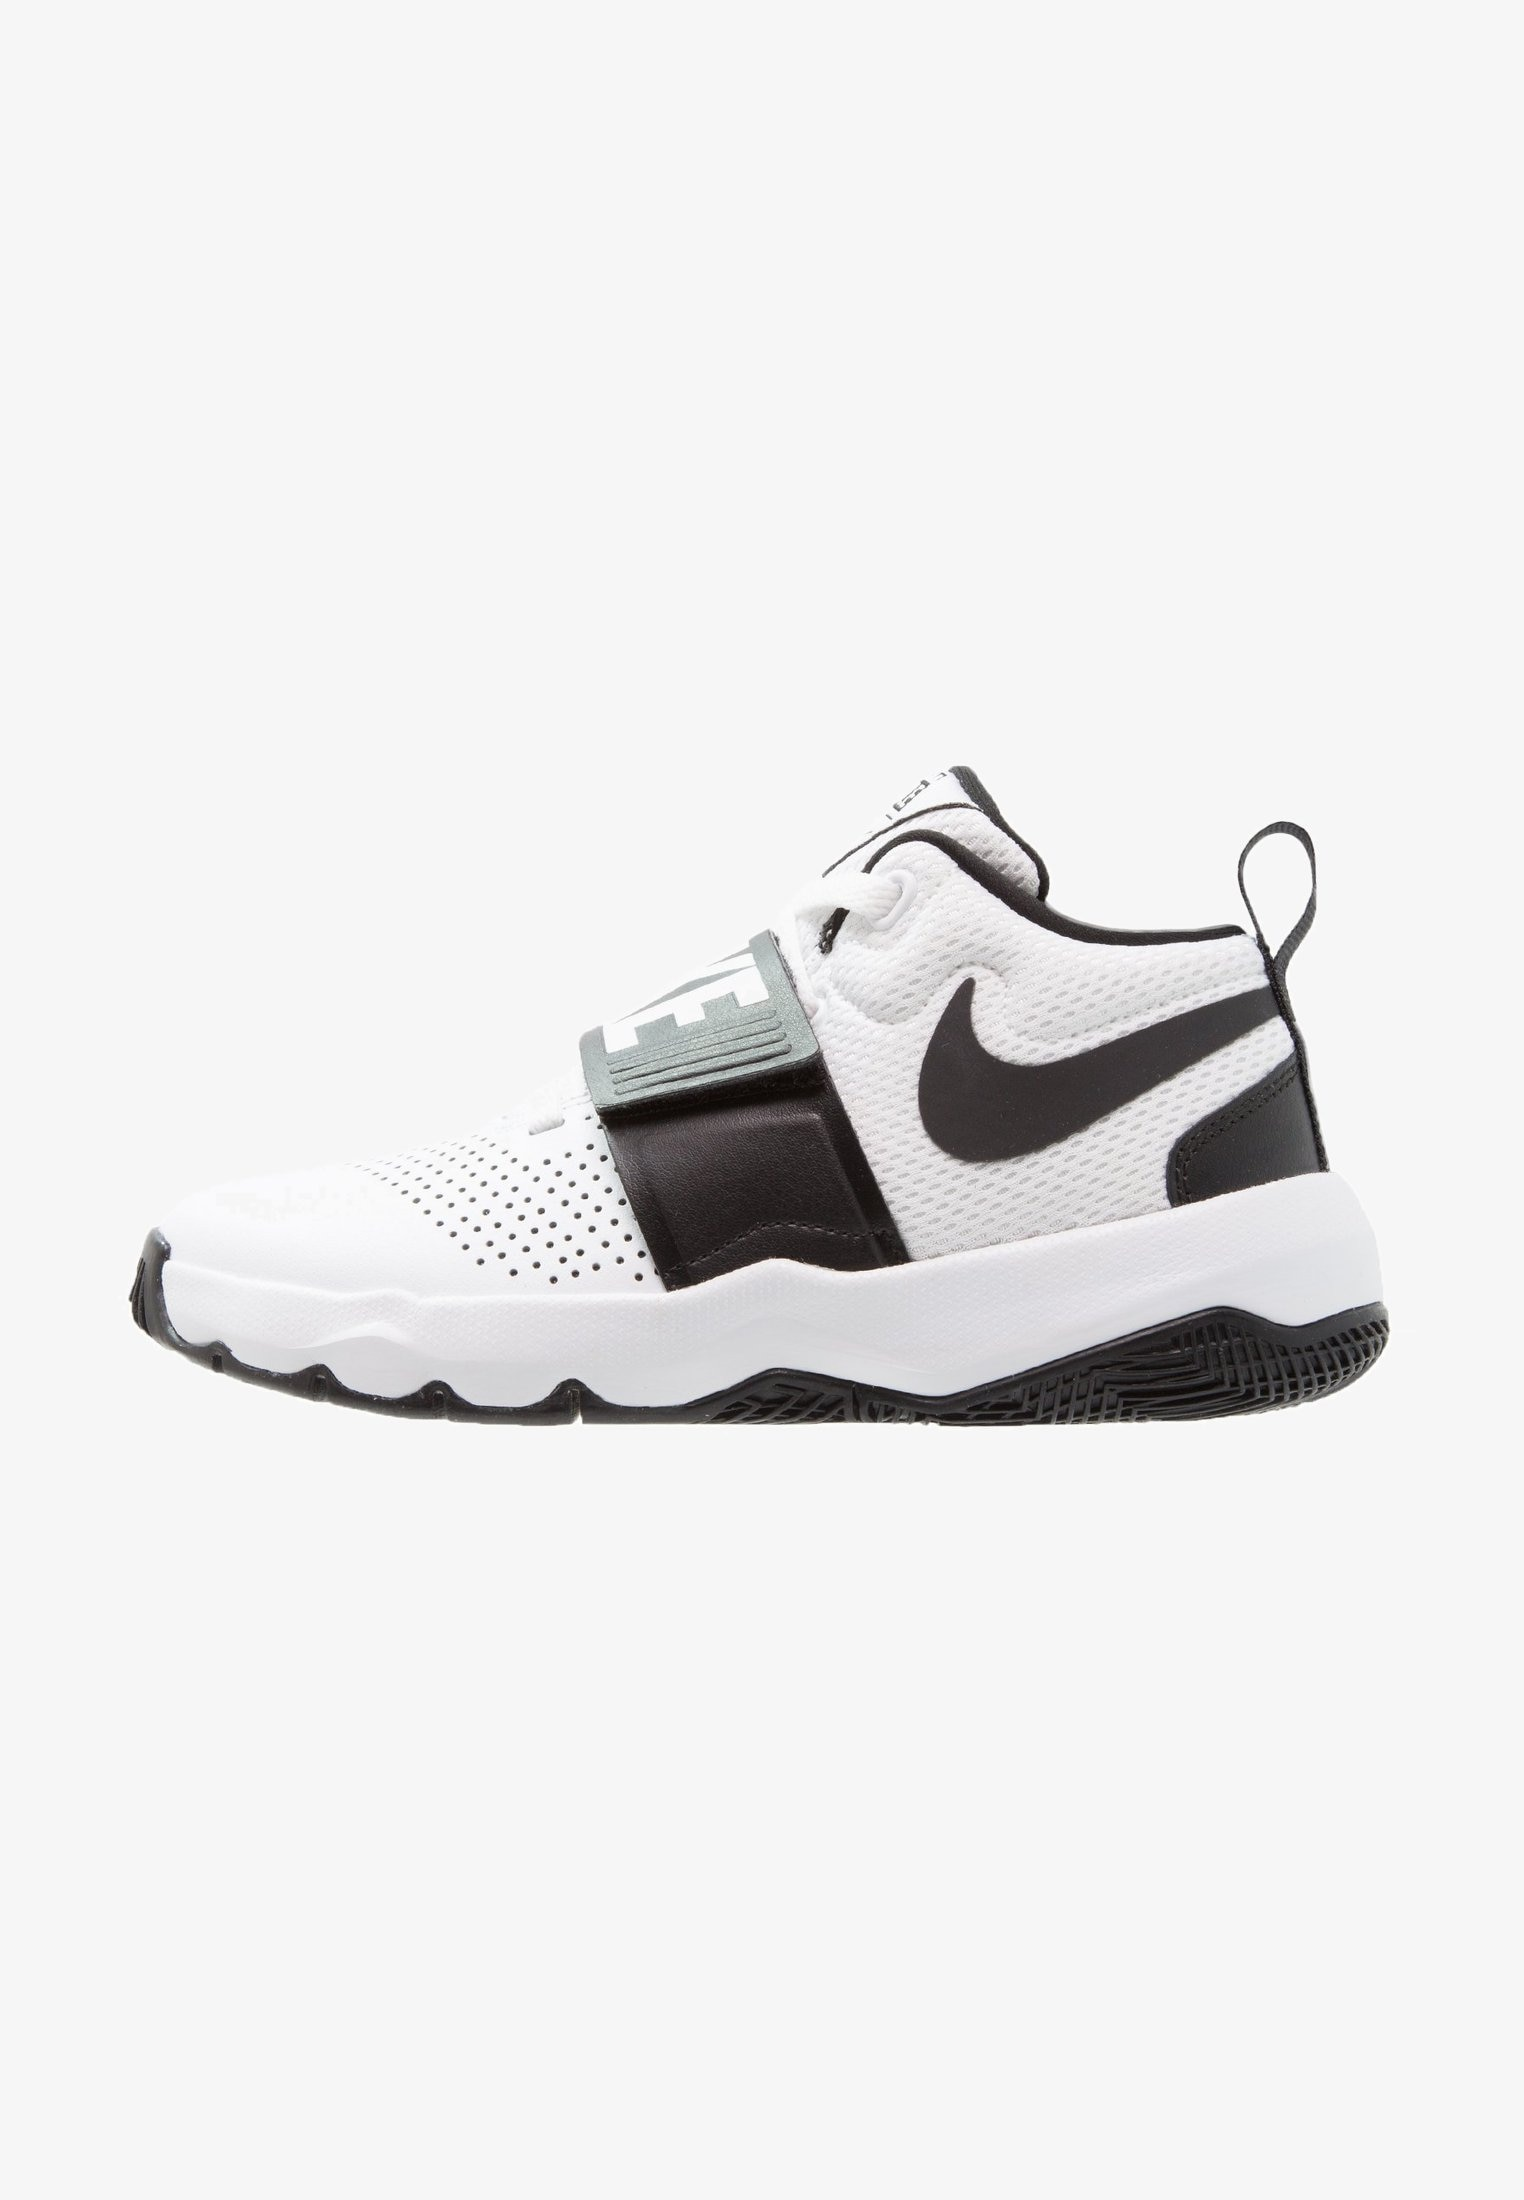 SCARPE NIKE 881941 100 TEAM HUSTLE D 8 GS WHITE//BLACK MODA JUNIOR BASKET